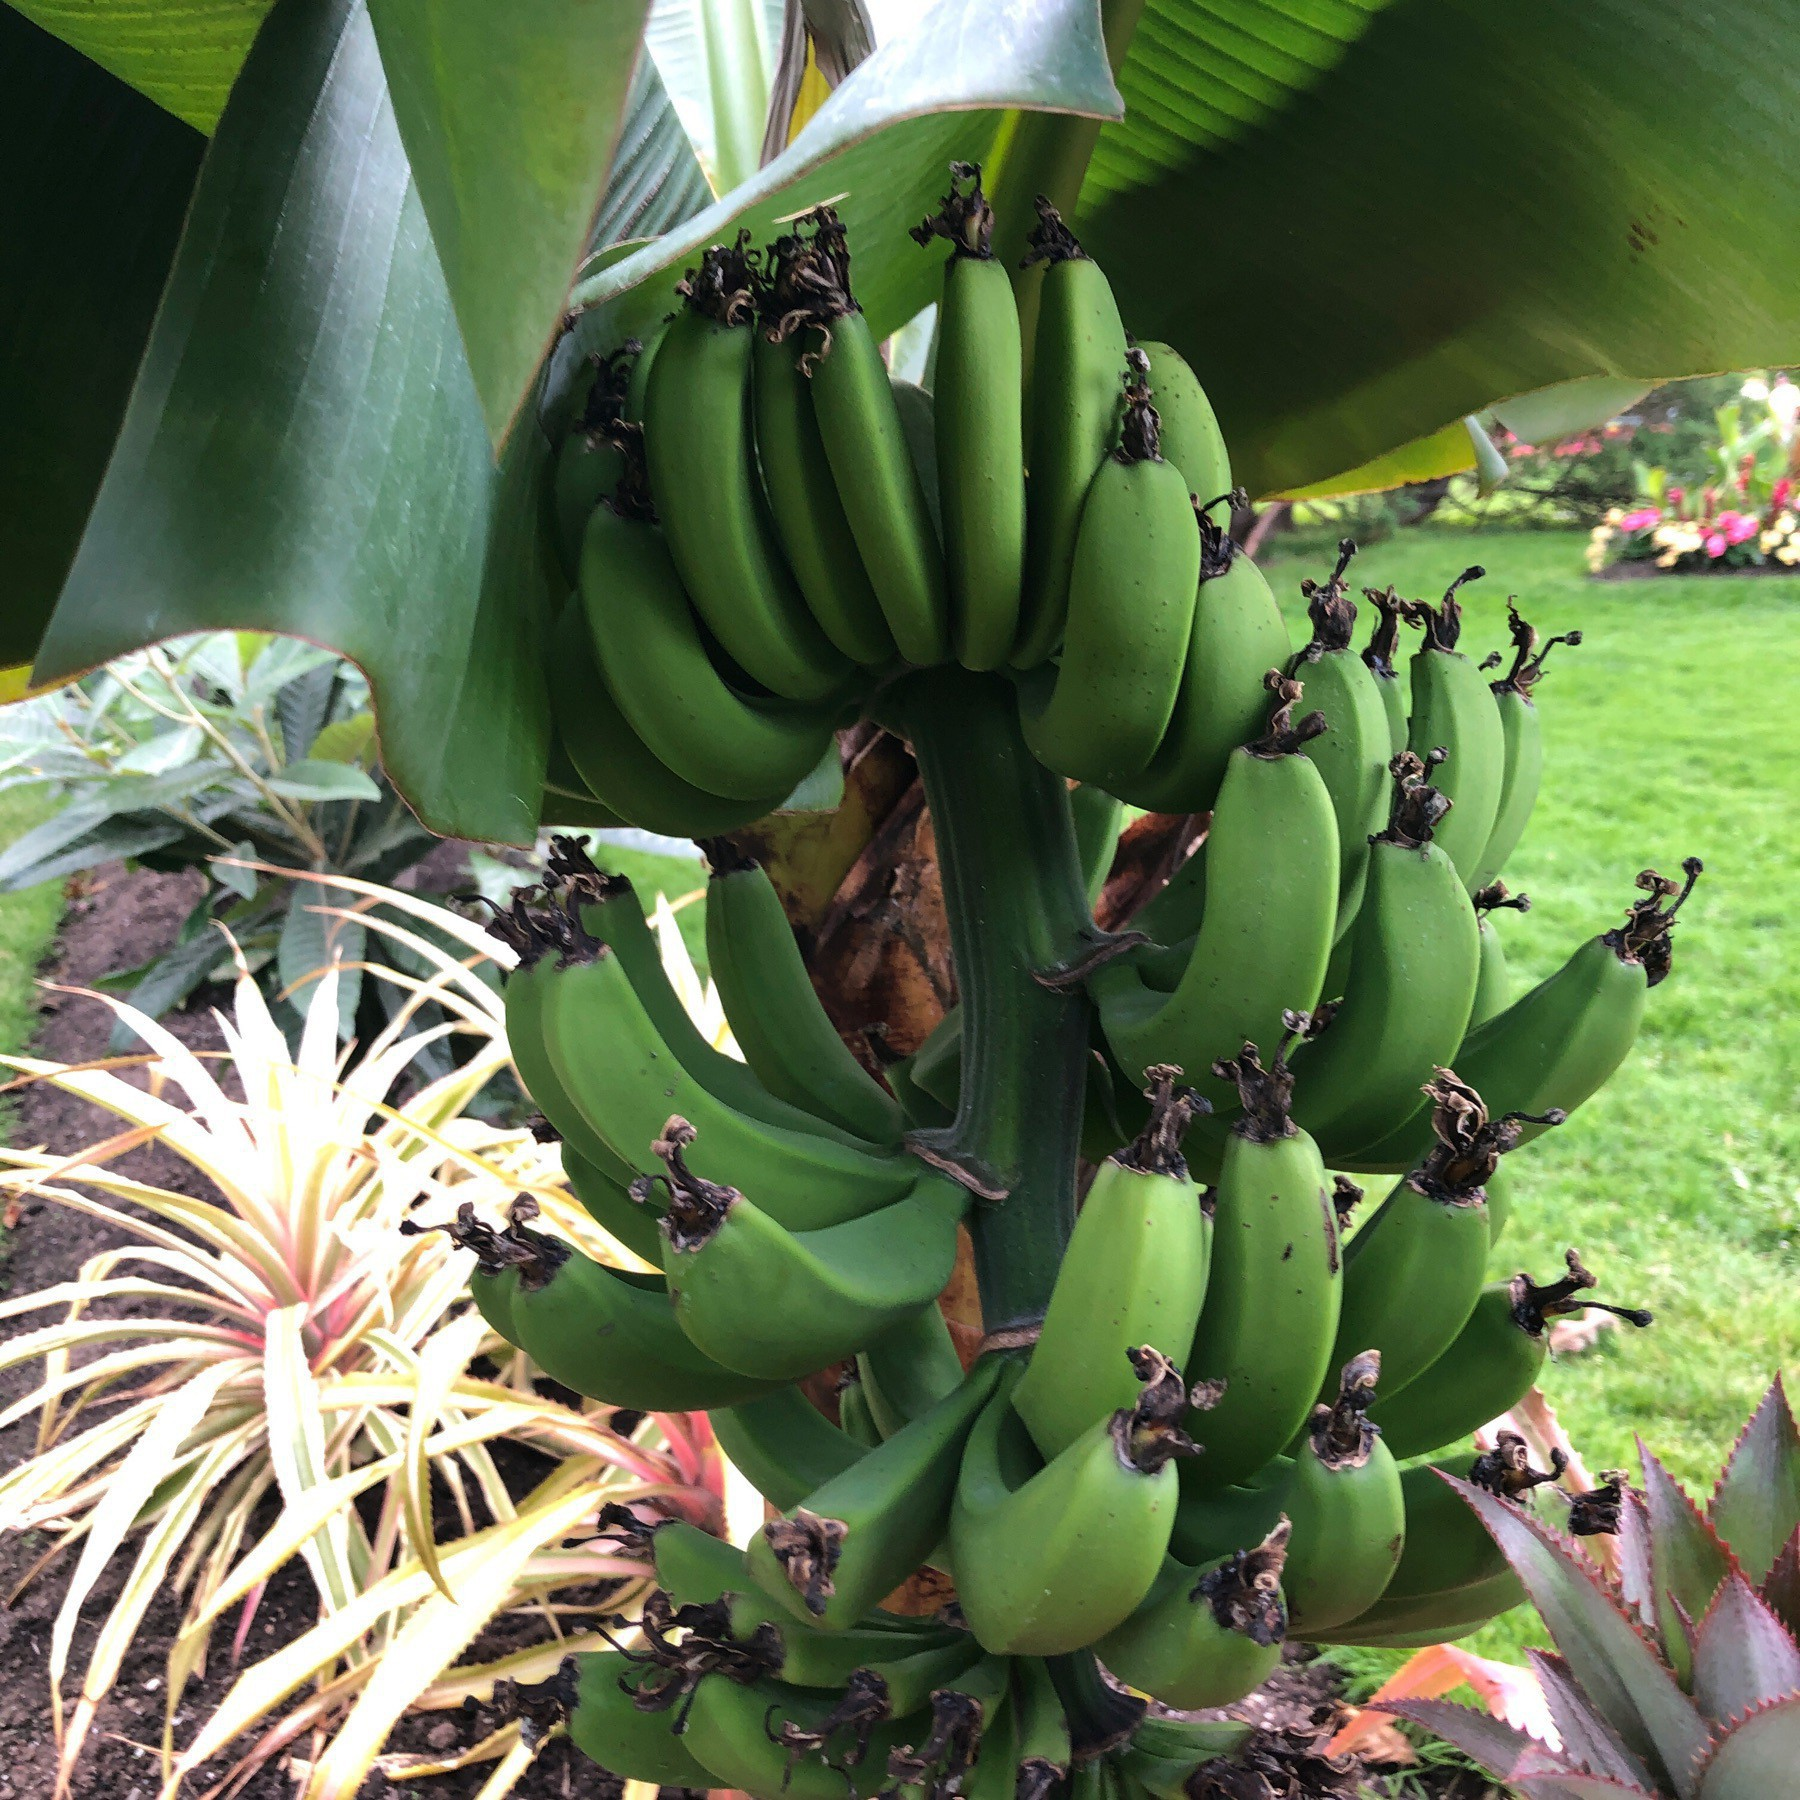 Green bananas growing on tree.